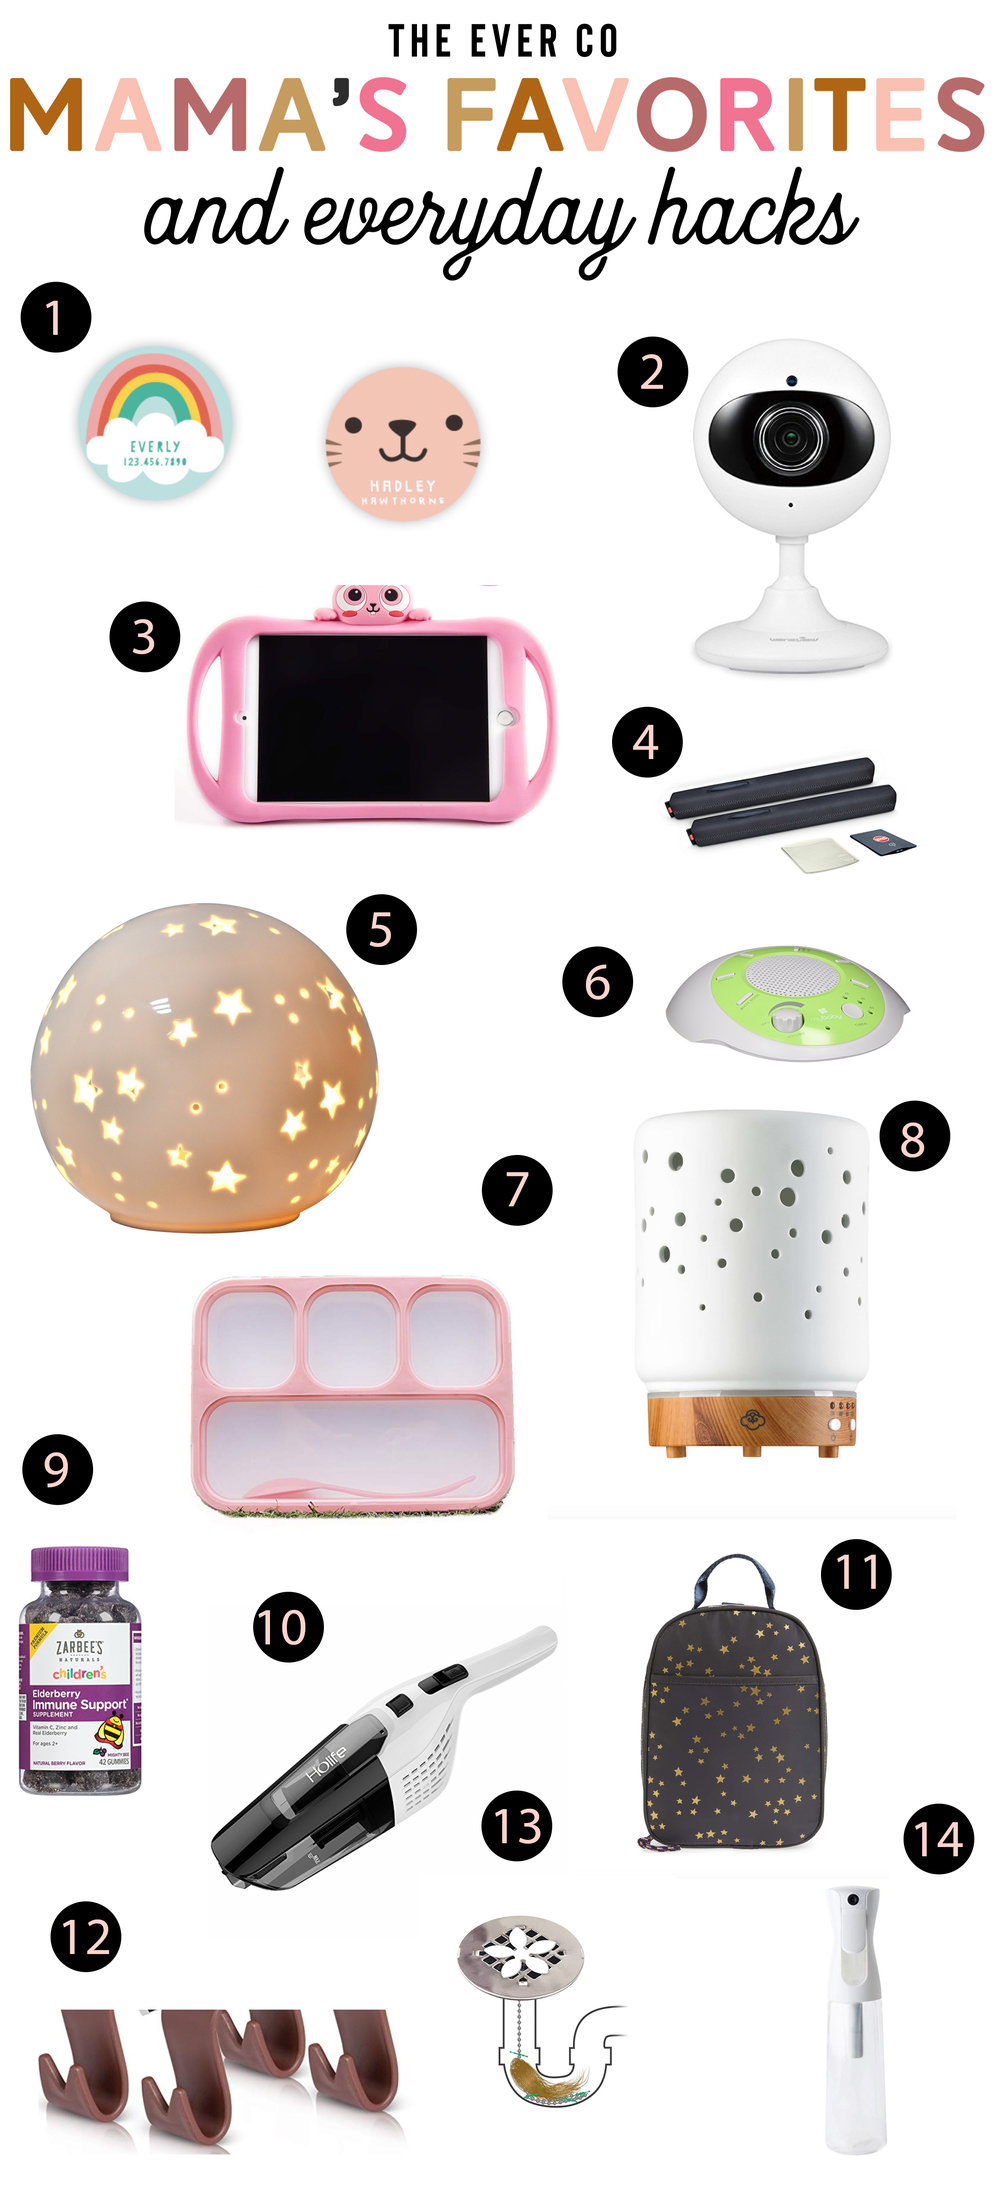 5ccb09e4ca8d4 If you loved this gift guide, or wanna save it for future reference, be  sure you pin the image above to a pinterest board so you can come back to  it!